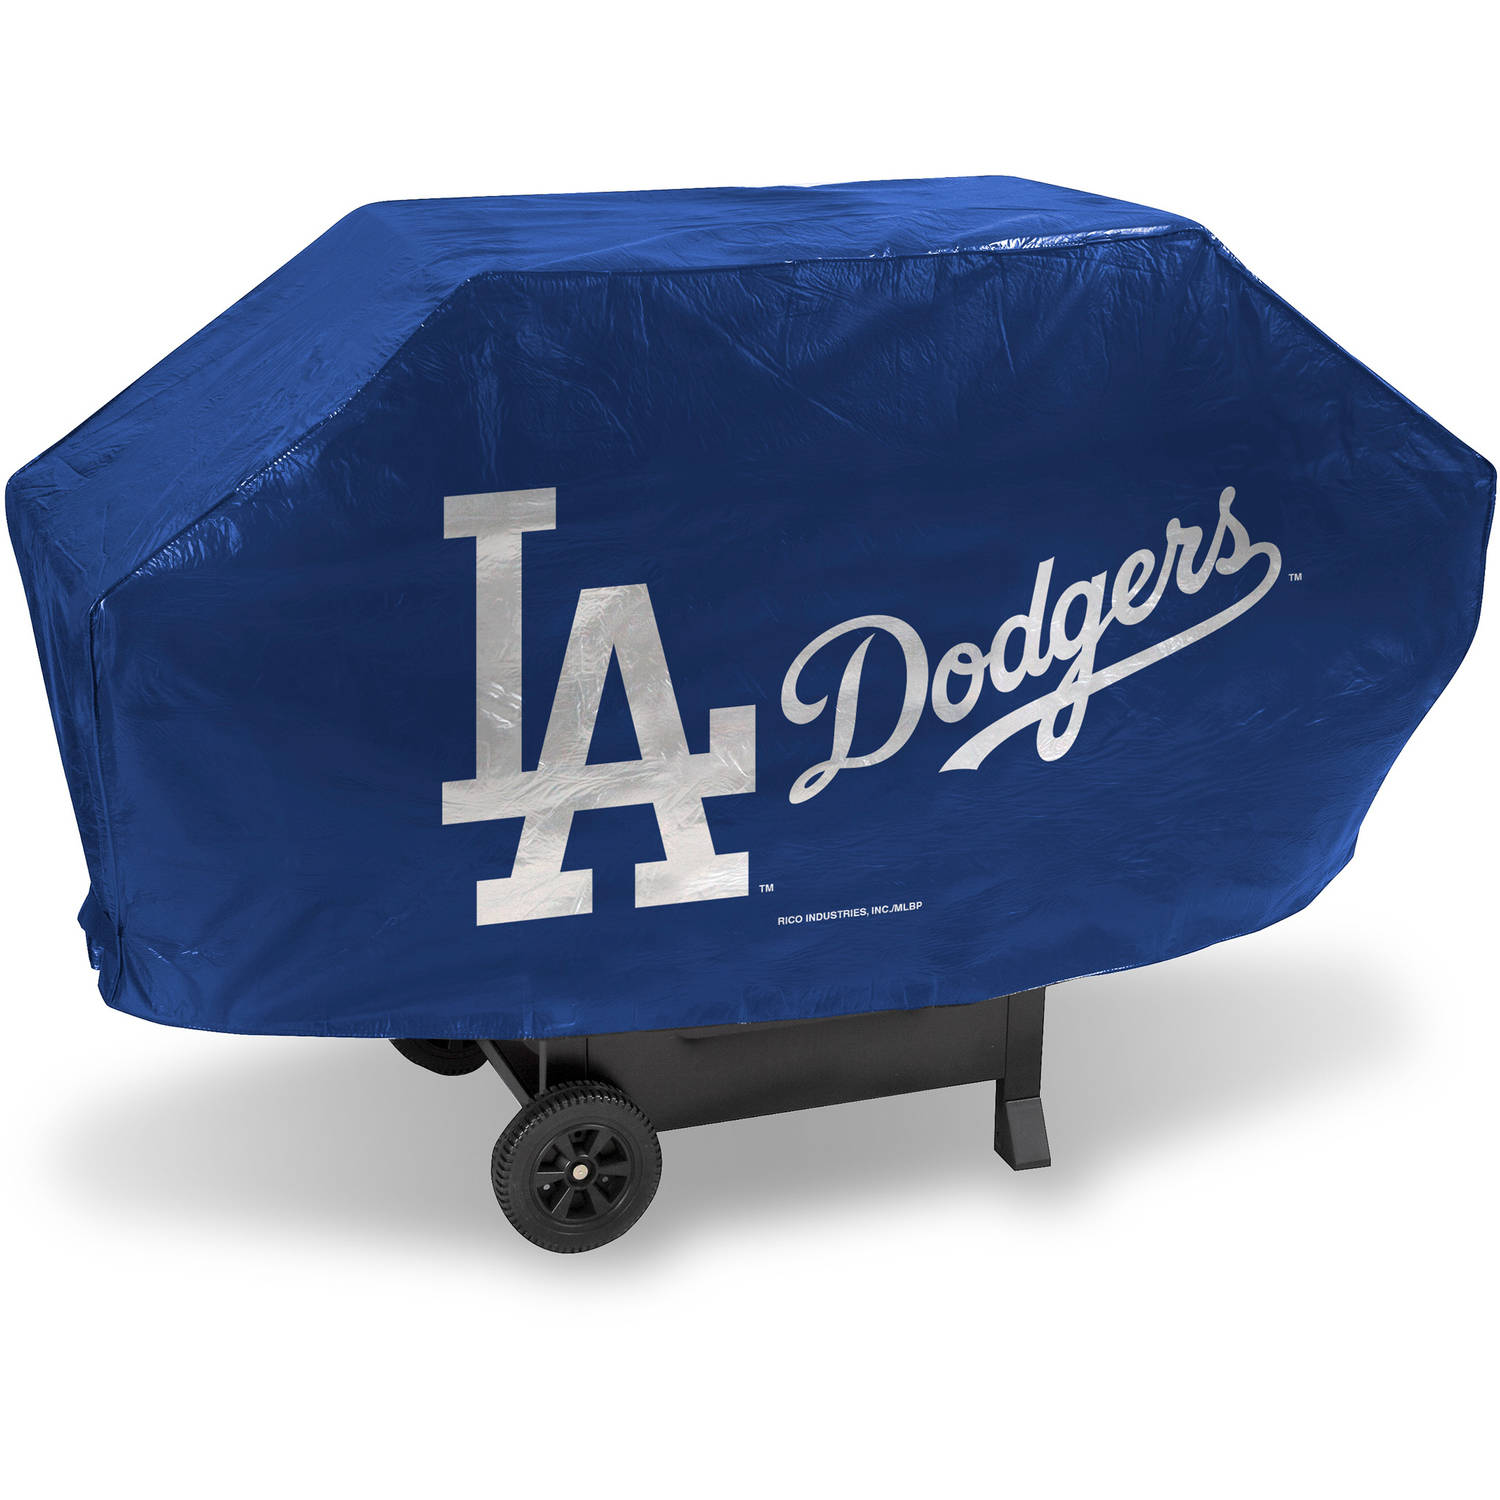 LA Dodgers Deluxe Grill Cover